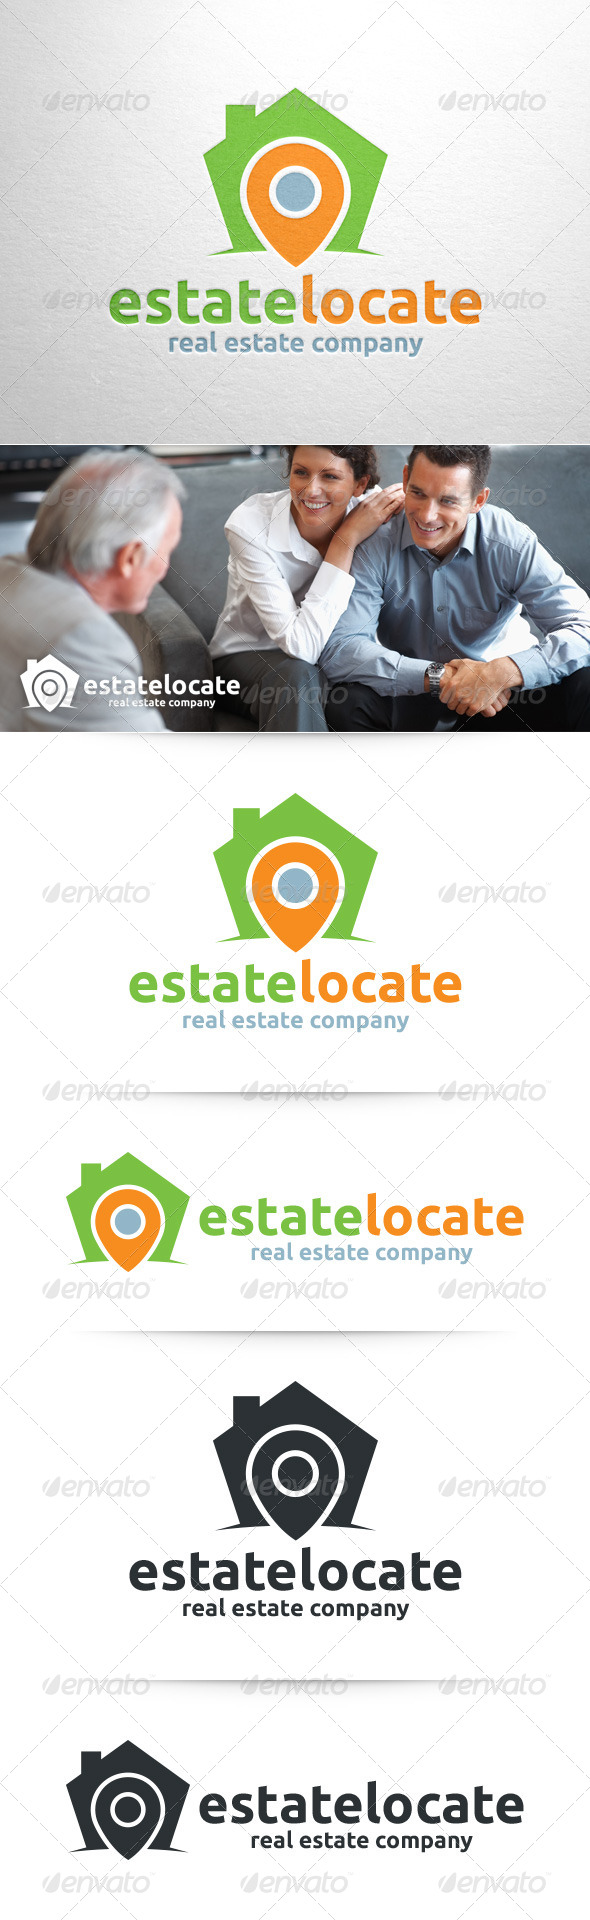 GraphicRiver Estate Locate Logo Template 8358067